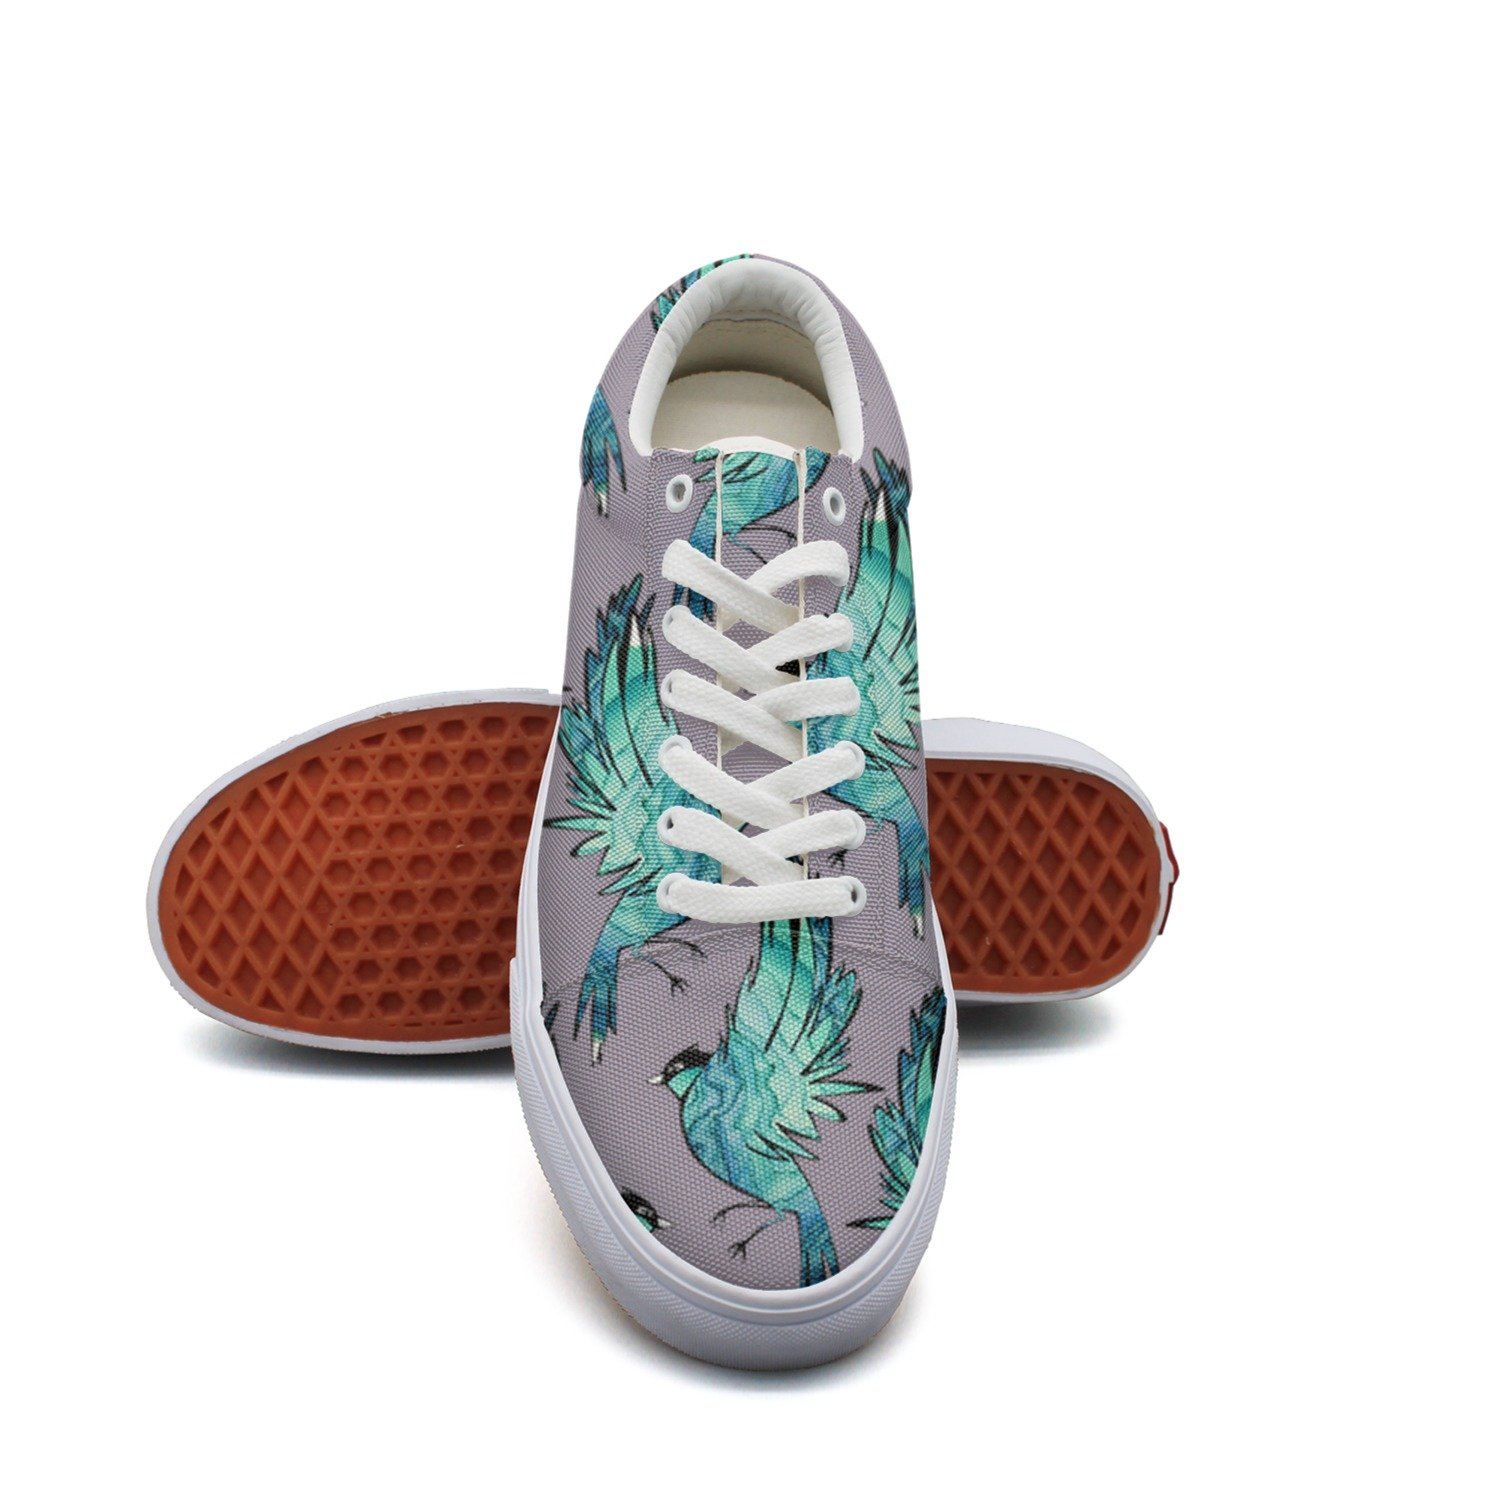 hjkggd fgfds Casual Watercolor Attractive Parrot Pattern Attractive Watercolor Women Canvas Sneakers Shoes B07DJ4SMXV Fashion Sneakers e76646